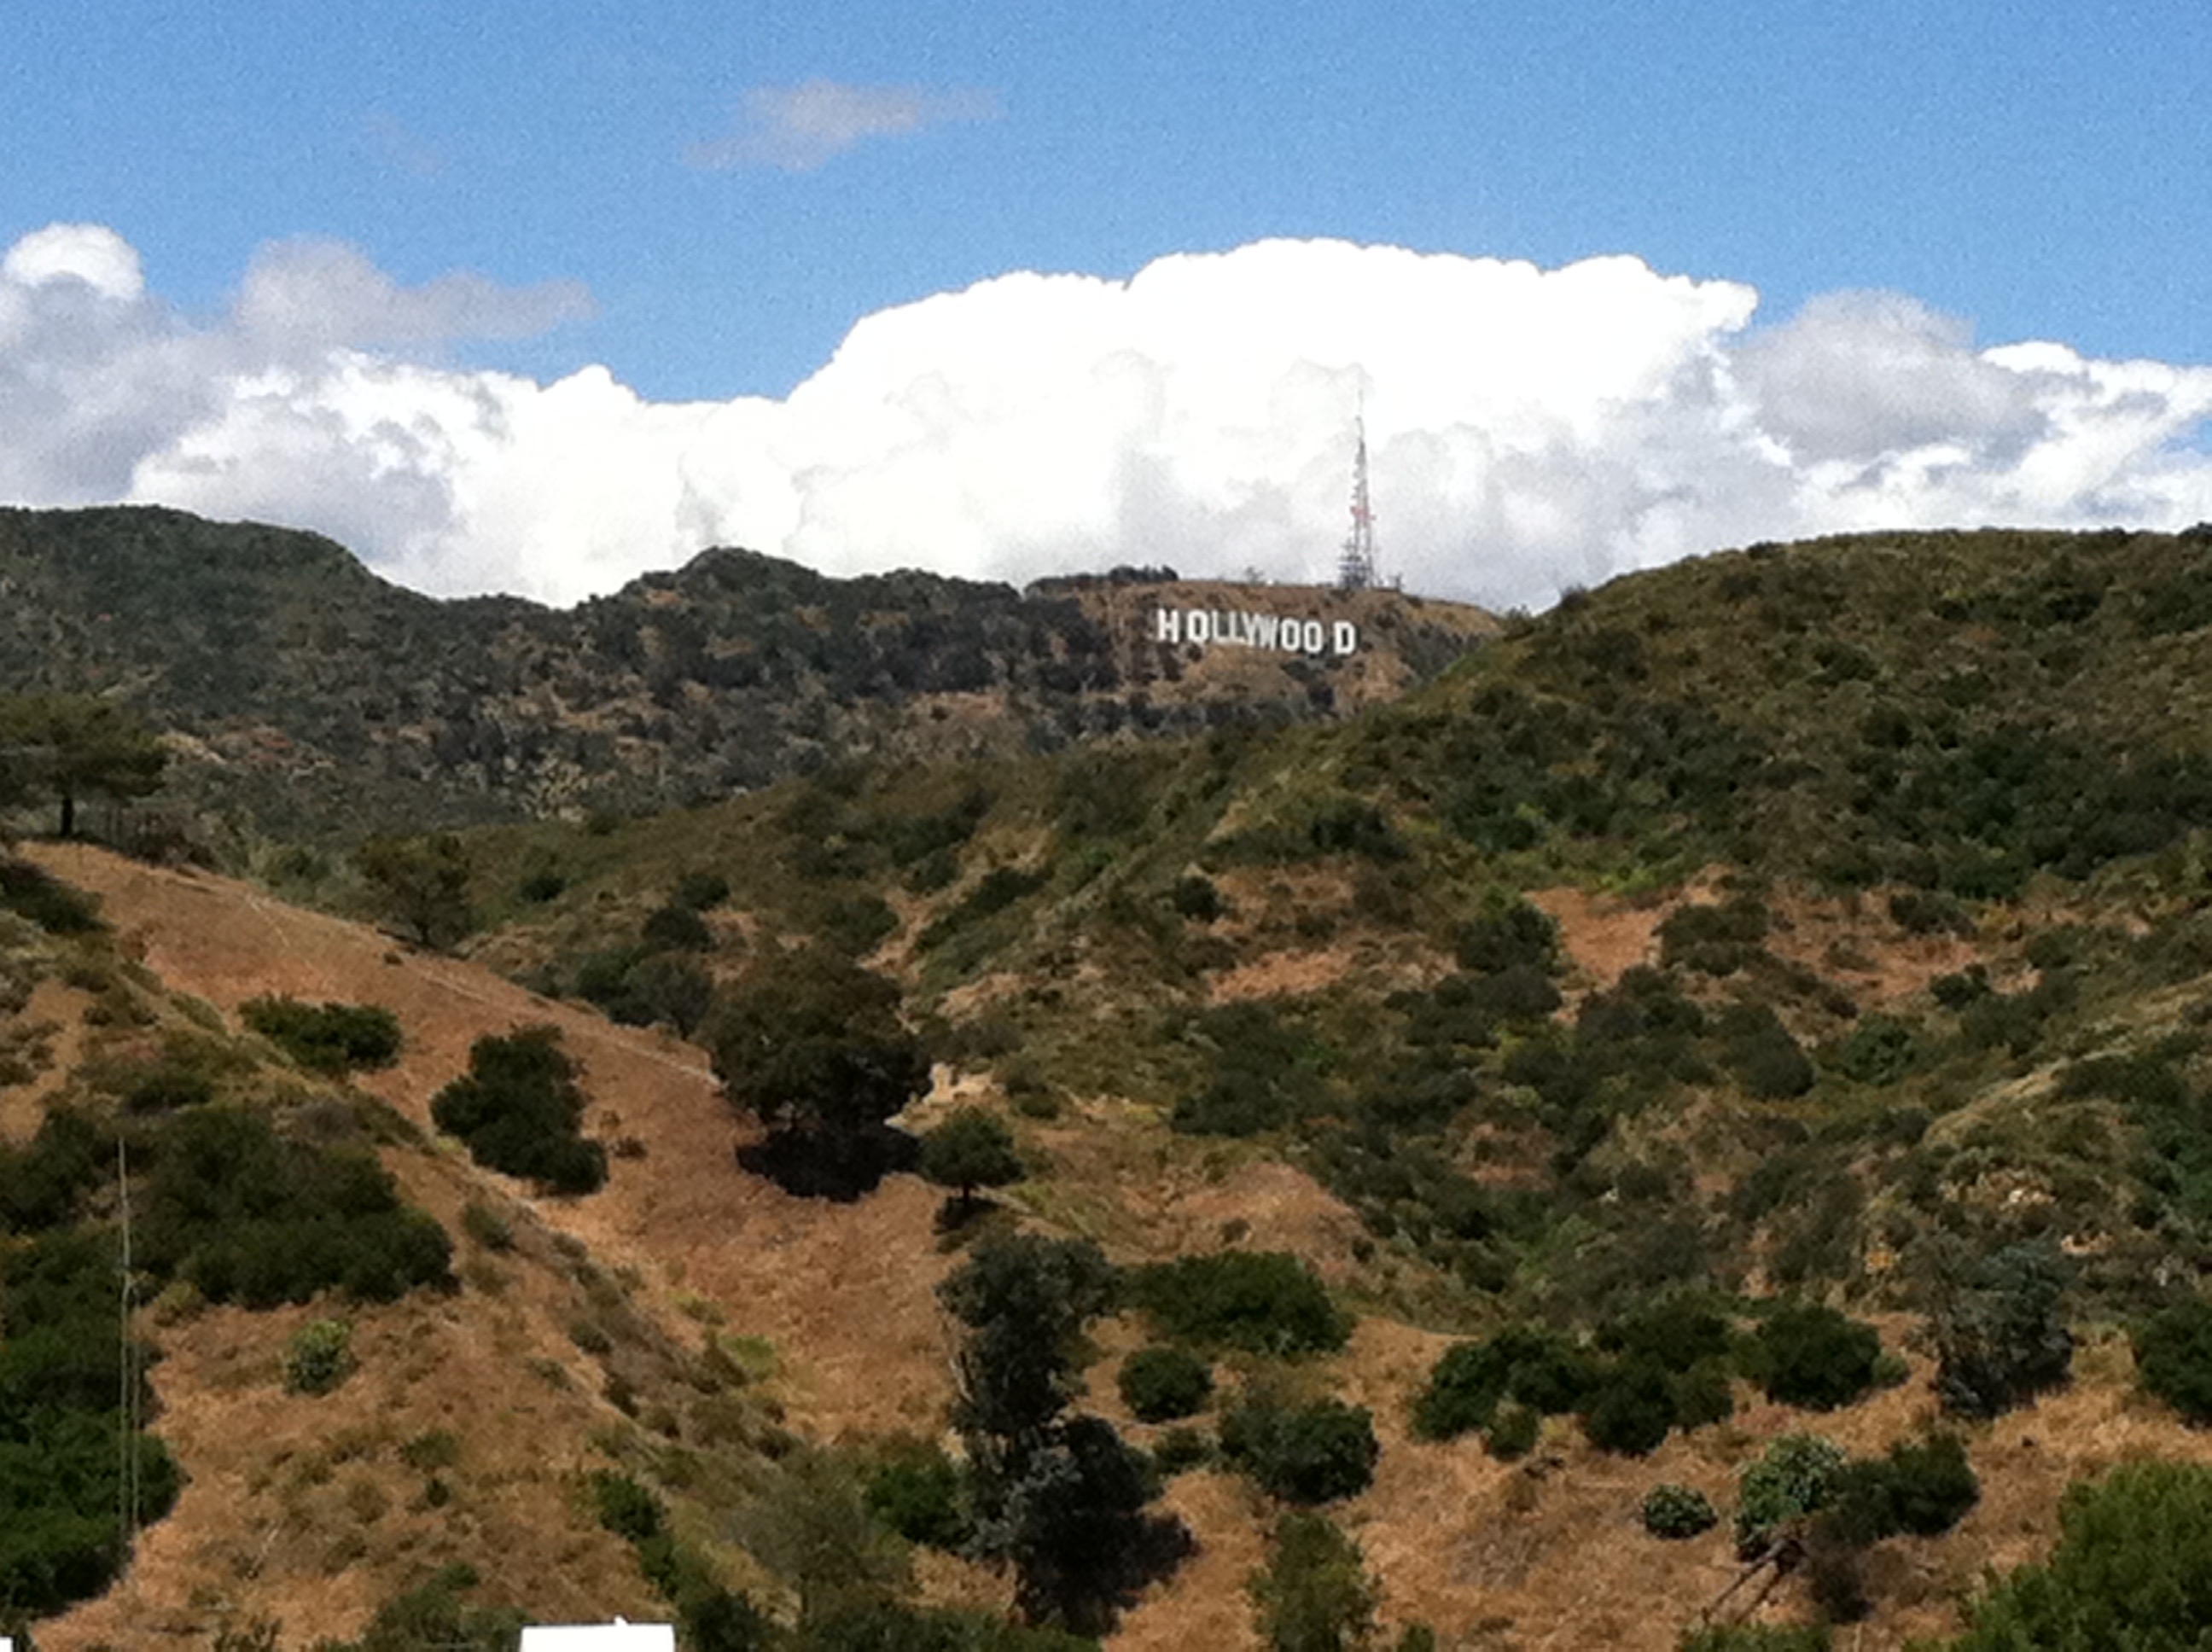 Hollywood sign from the Hollywood Bowl